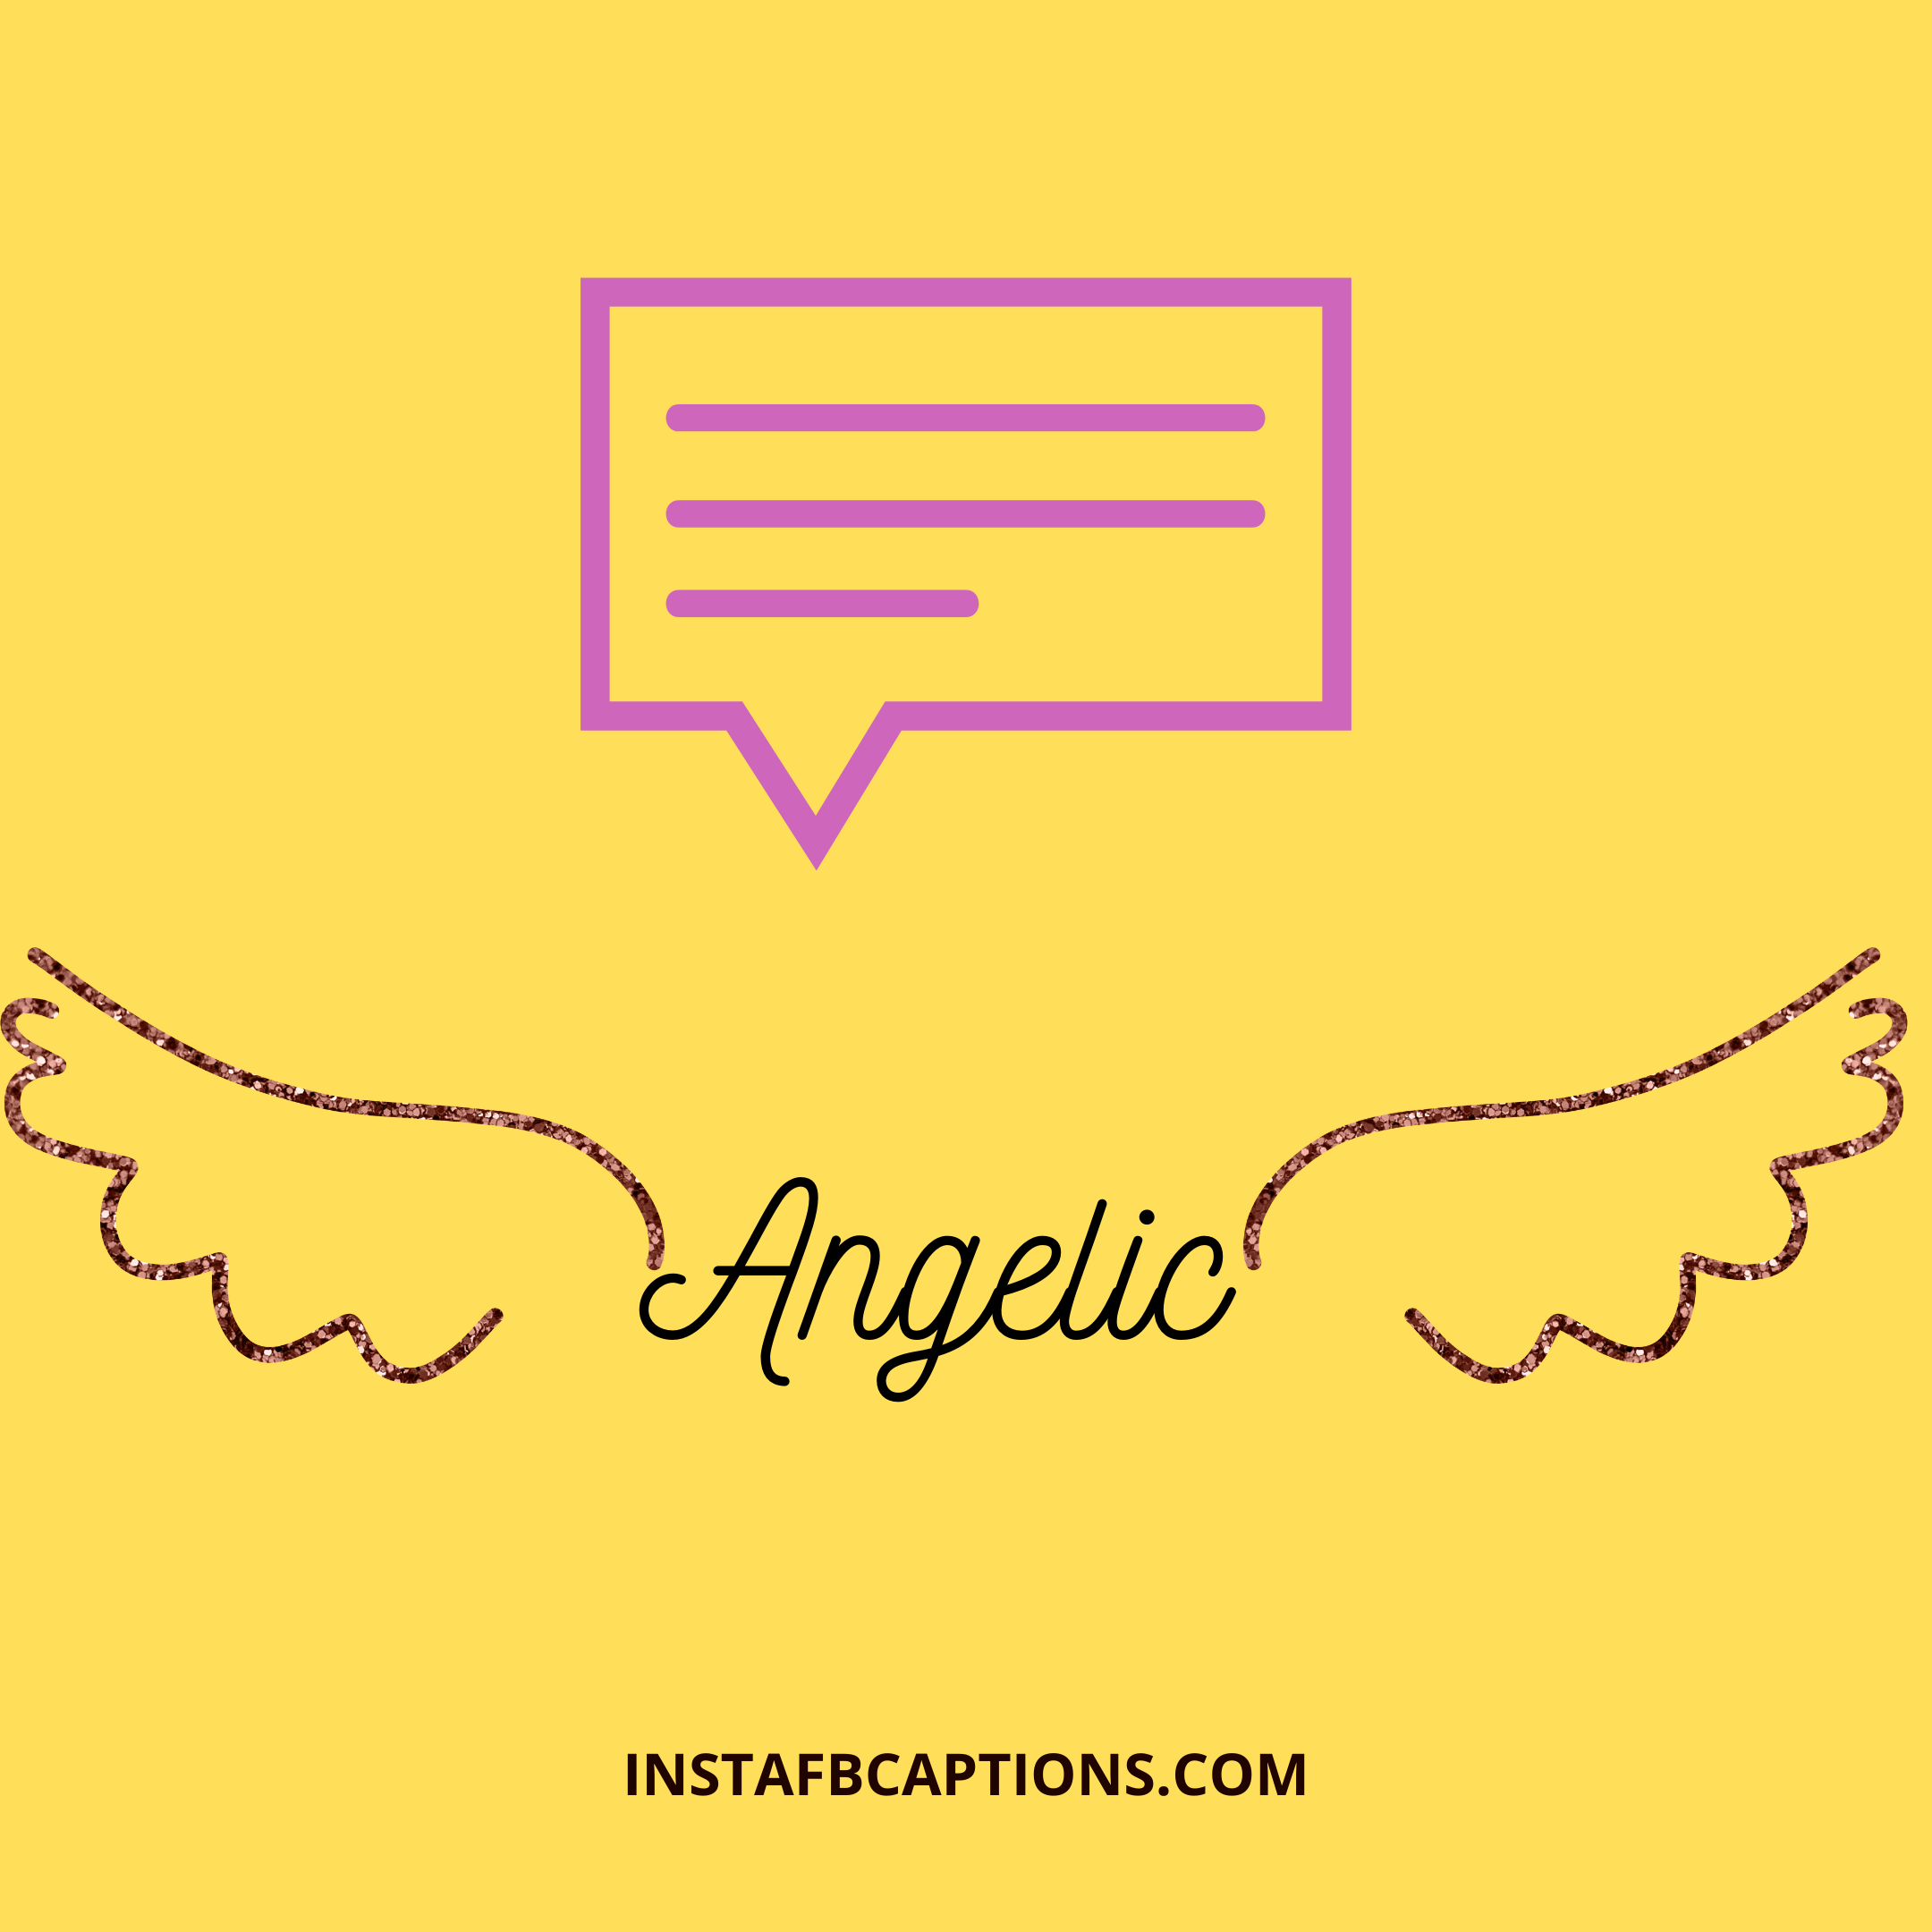 Angelic  - Angelic - 600+ Best Comments for Girls Pic Instagram 2020